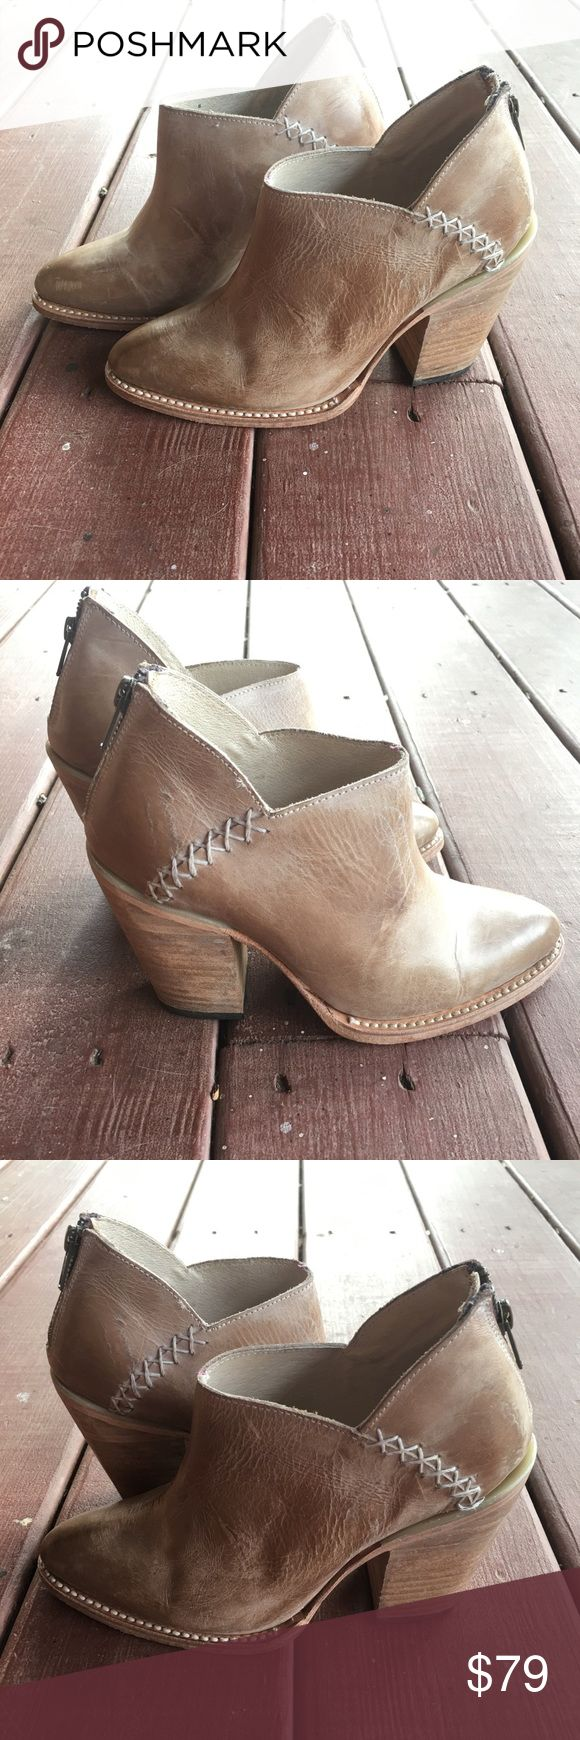 Freebird by Steven - Steel Ankle boots Freebird Steel Boots Taupe Booties - Size 8 M. NWOB.  Made with antiqued leather featuring topstitching detail.  Back-zip closure.  Almond toe on a low ankle bootie silhouette.  All Leather. Heel Height: 3 1⁄4 in Freebird by Steven Shoes Ankle Boots & Booties